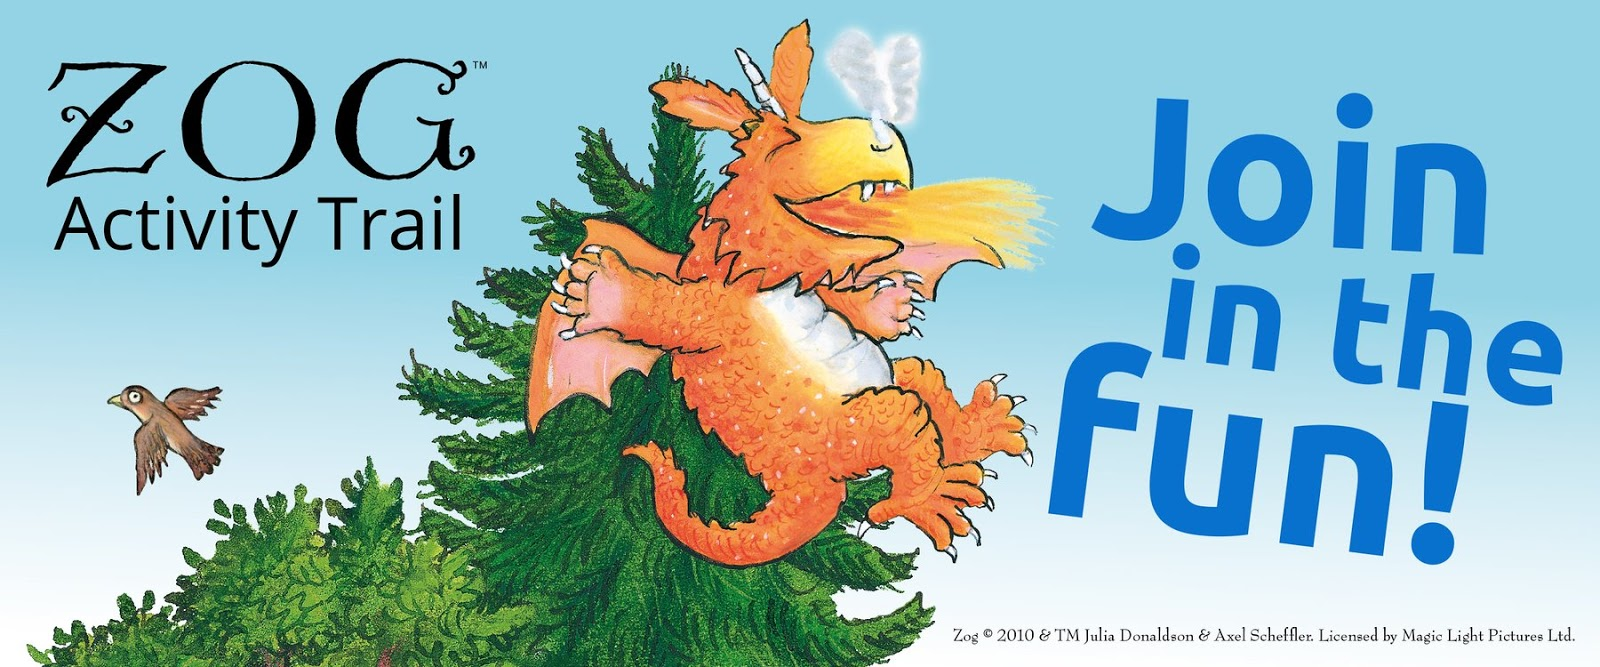 Try the FREE Zog Trail at Kielder Forest